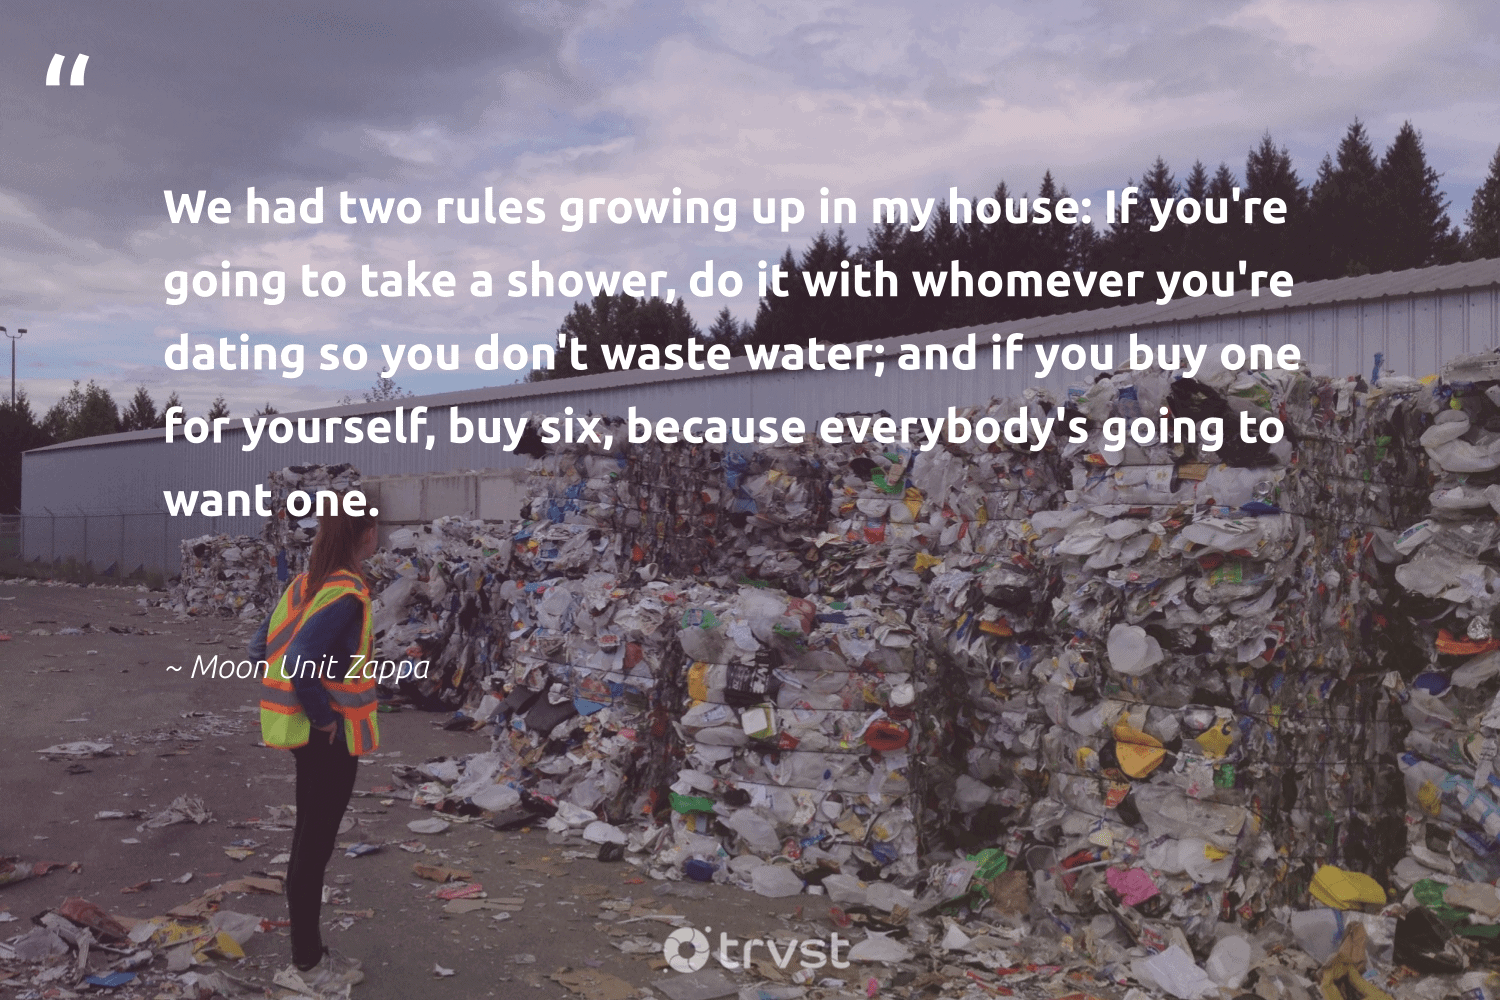 """""""We had two rules growing up in my house: If you're going to take a shower, do it with whomever you're dating so you don't waste water; and if you buy one for yourself, buy six, because everybody's going to want one.""""  - Moon Unit Zappa #trvst #quotes #waste #waronwaste #dosomething #environmentallyfriendly #takeaction #loveourplanet #bethechange #plantbased #dogood #changeahabit"""